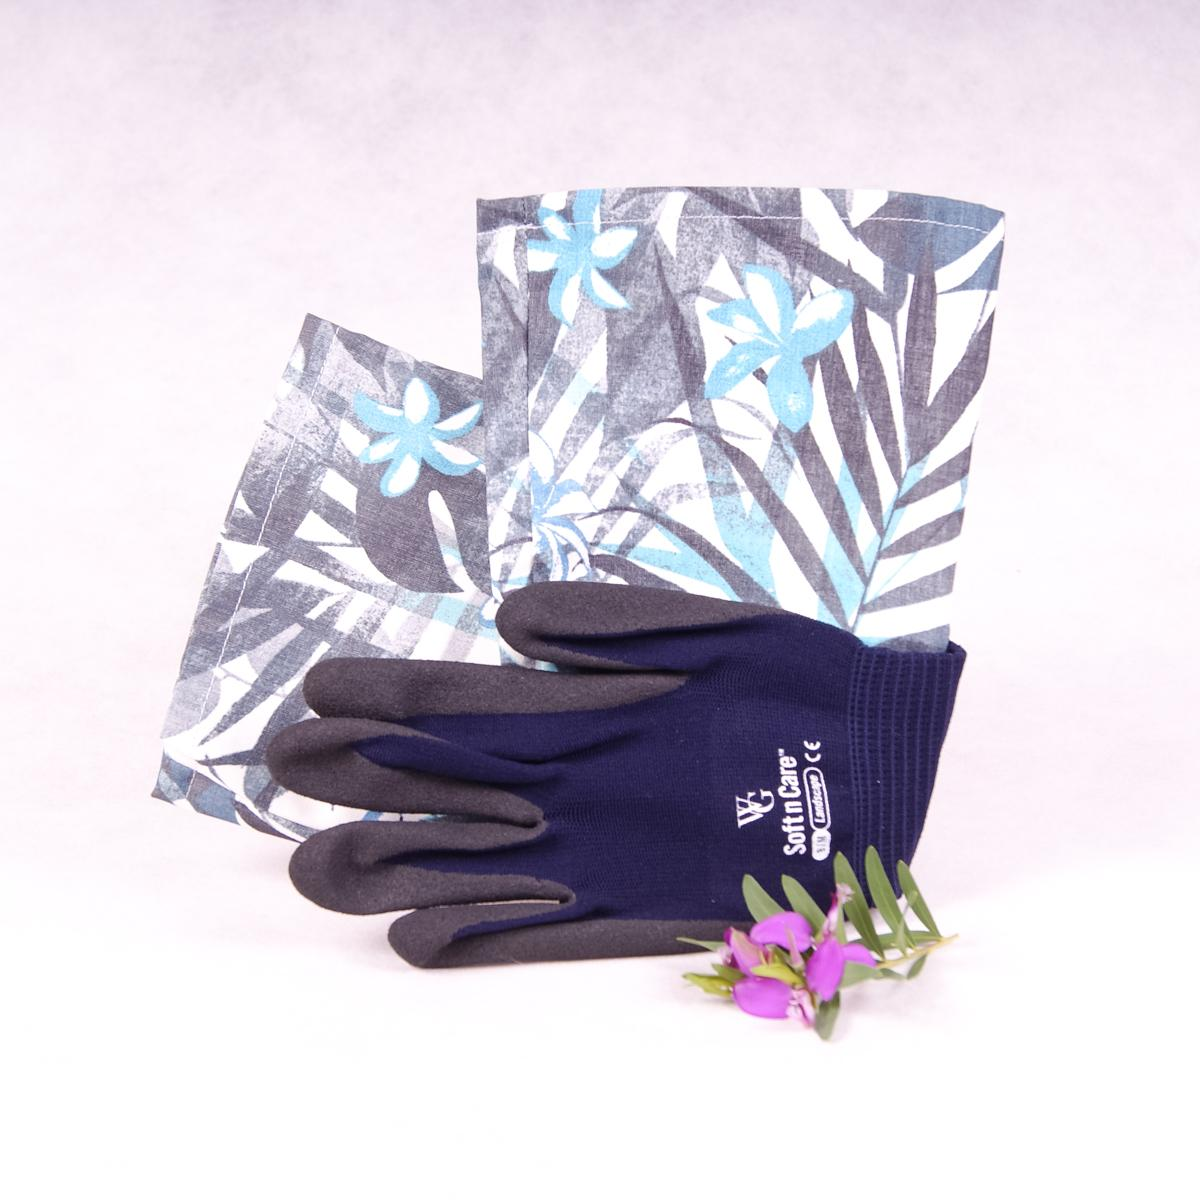 Long sleeve gardening gloves - Tropical Blue - Gloves - Throw Some Seeds - Australian gardening gifts and eco products online!